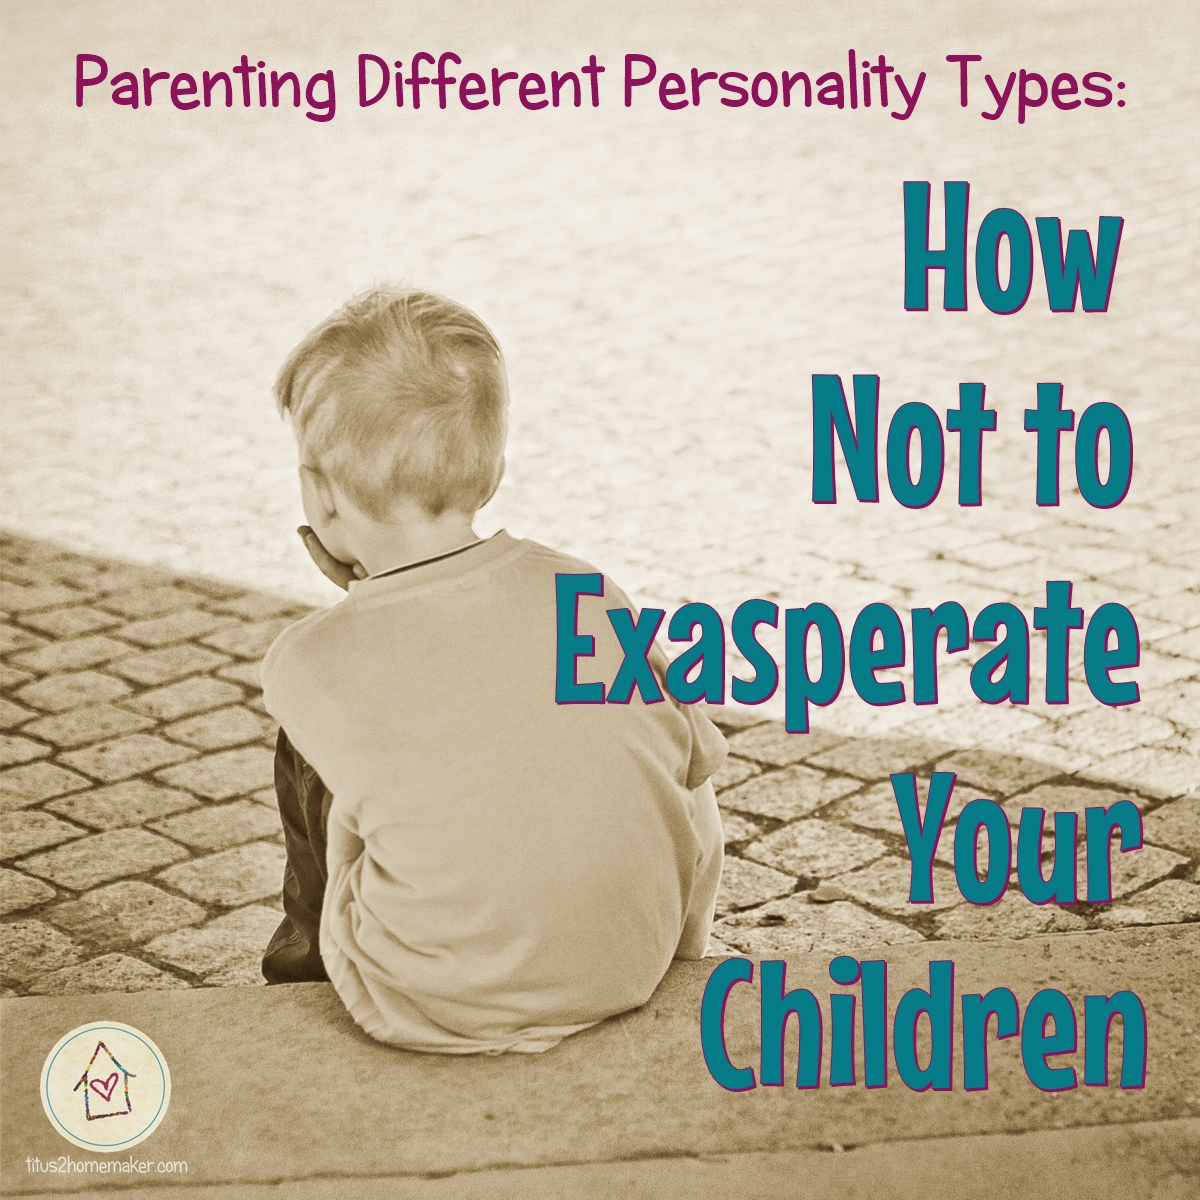 Parenting Different Personality Types: How Not to Exasperate